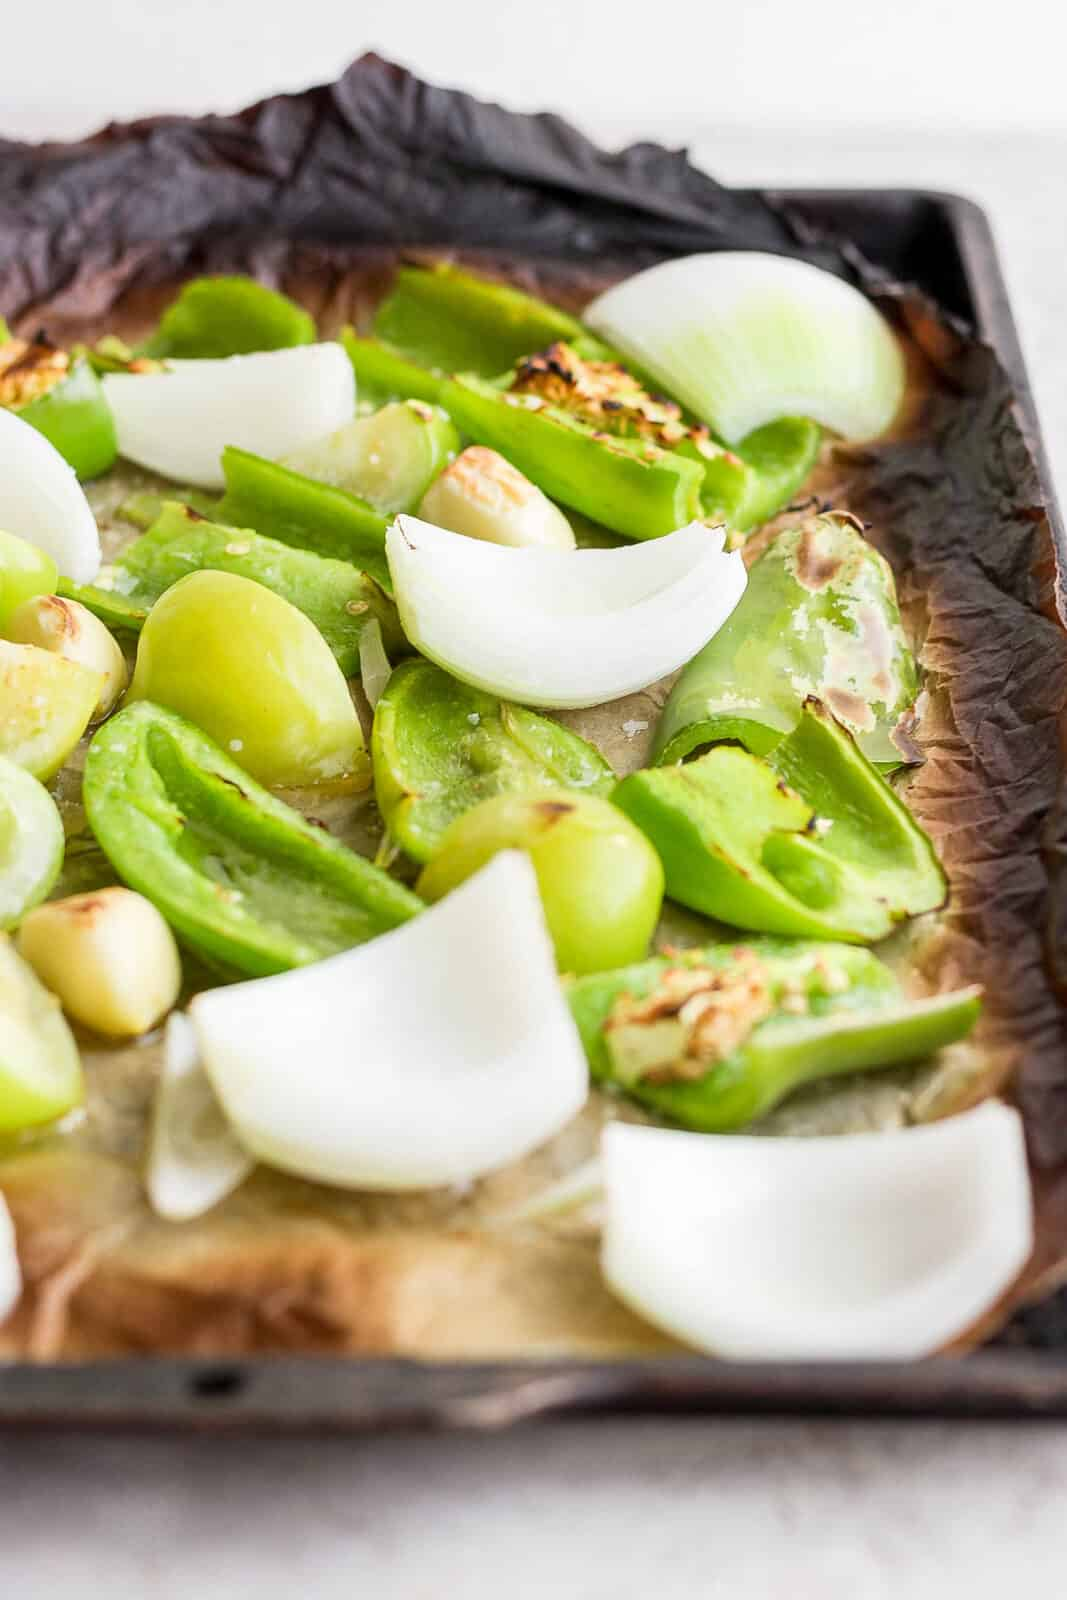 Roasted tomatillos, anaheim pepper, jalapeno, garlic, and onion on a parchment-lined pan.